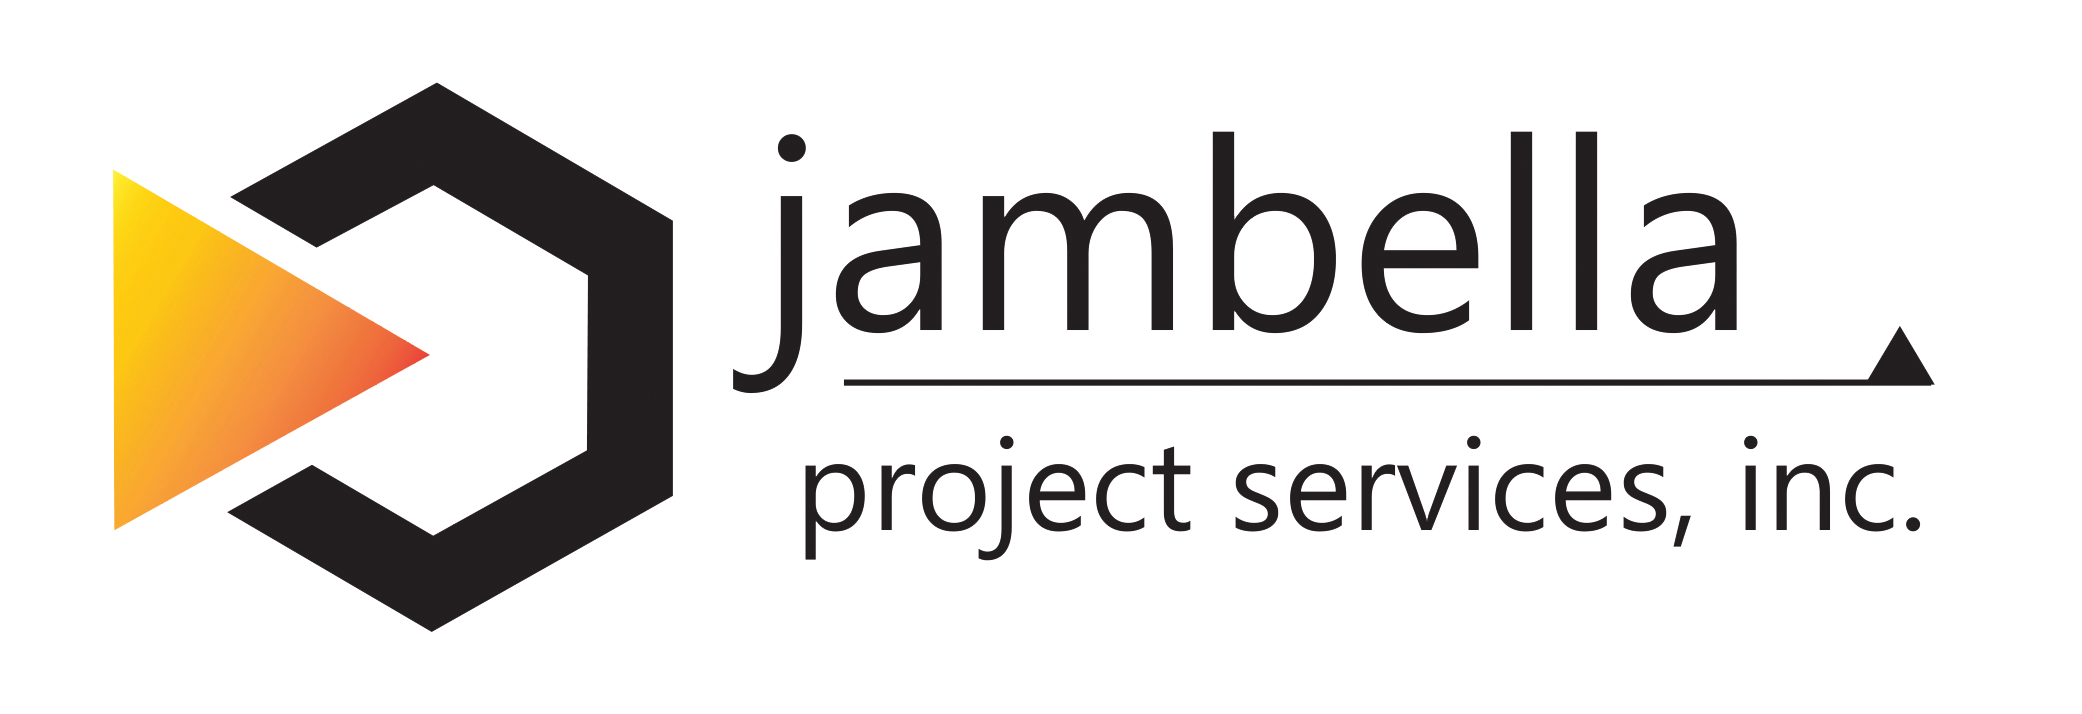 Jambella project services inc helping companies reduce their jambella project services inc xflitez Image collections